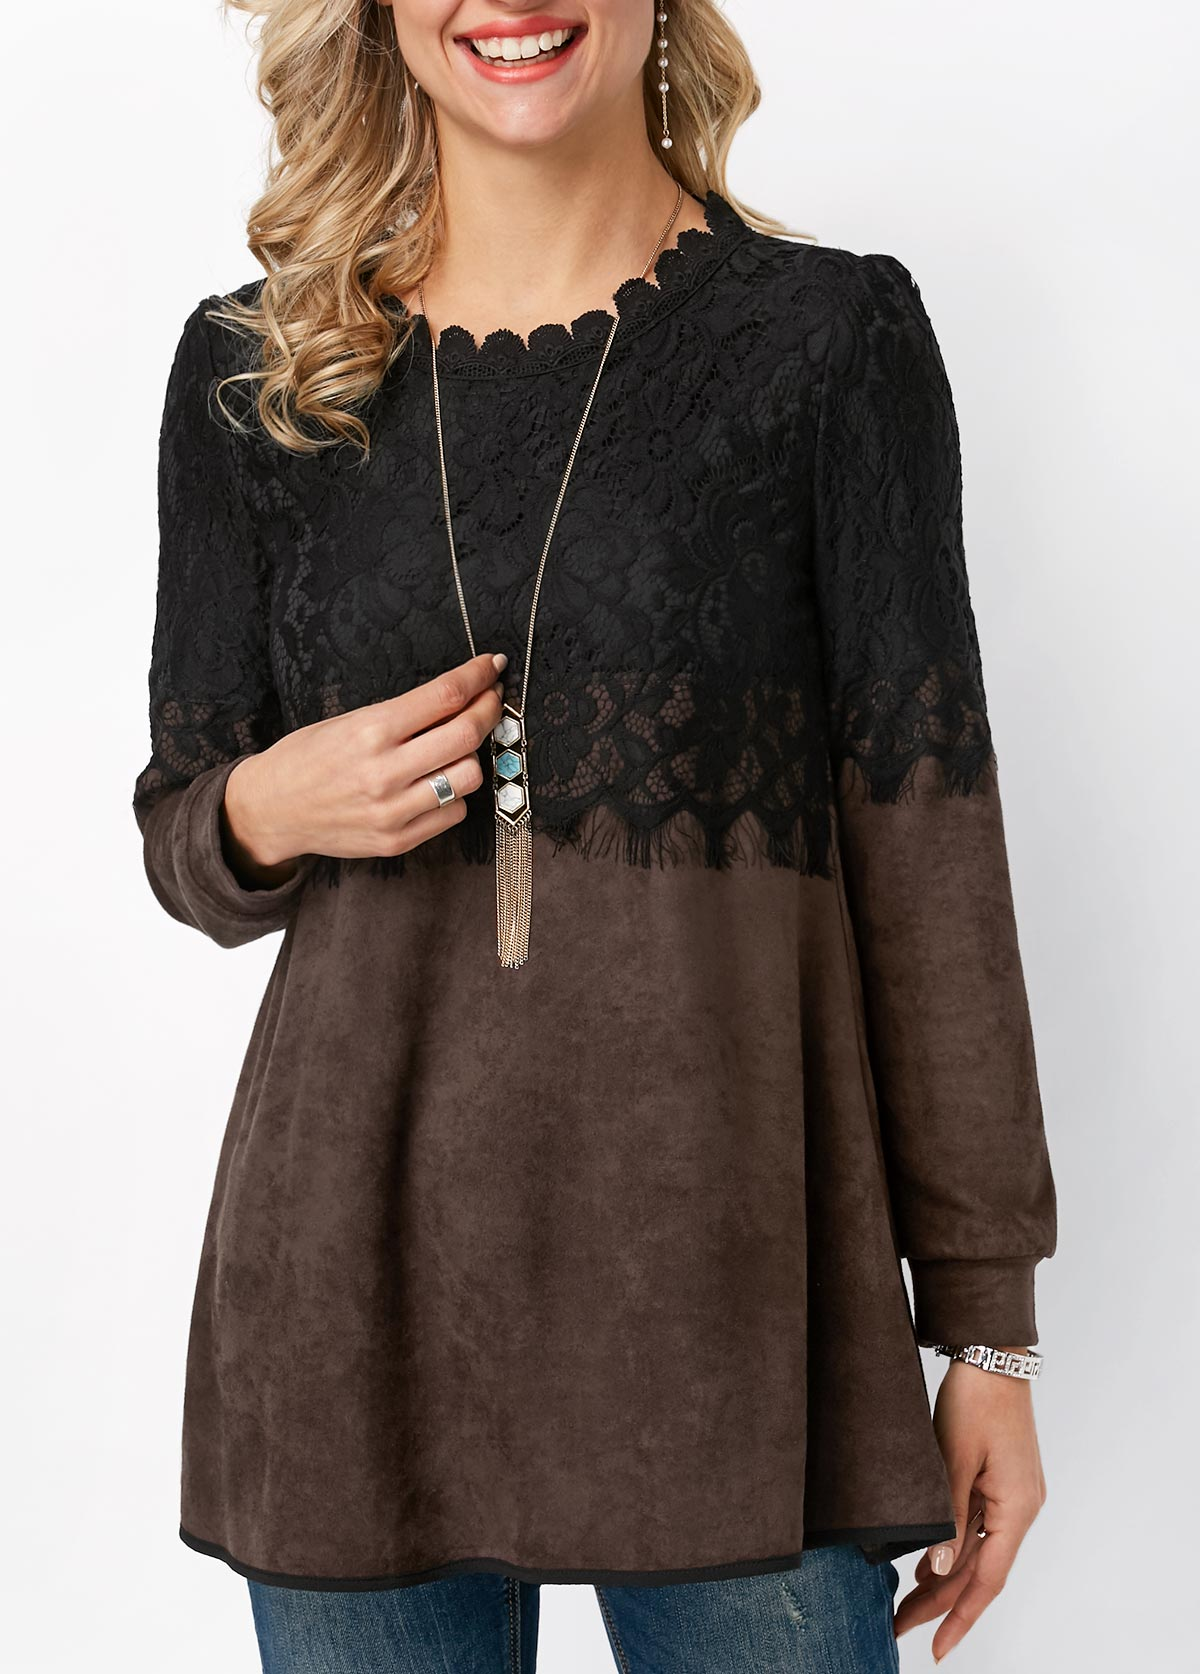 Lace Panel Round Neck Long Sleeve T Shirt